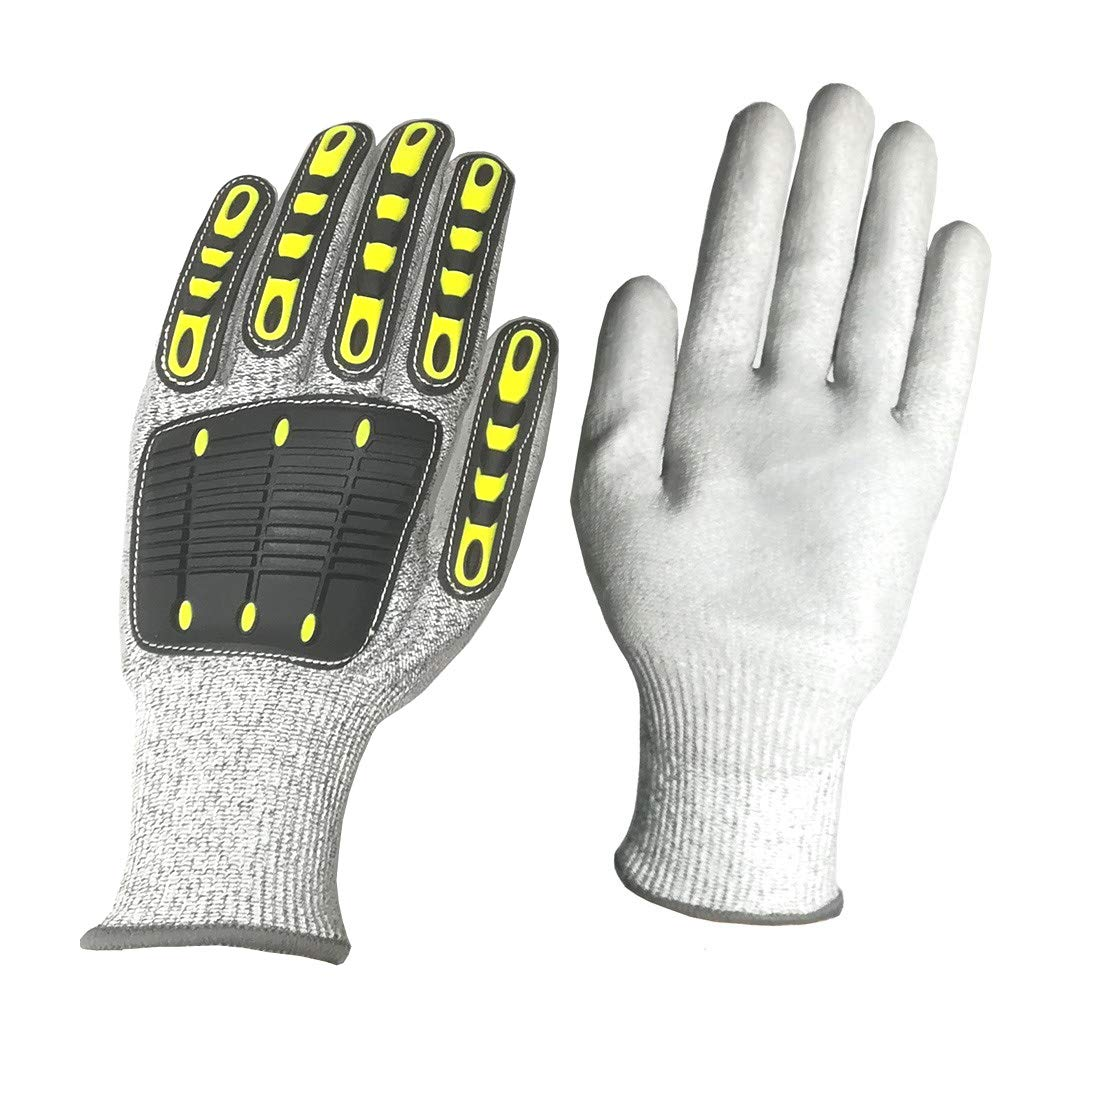 Best kevlar gloves ever